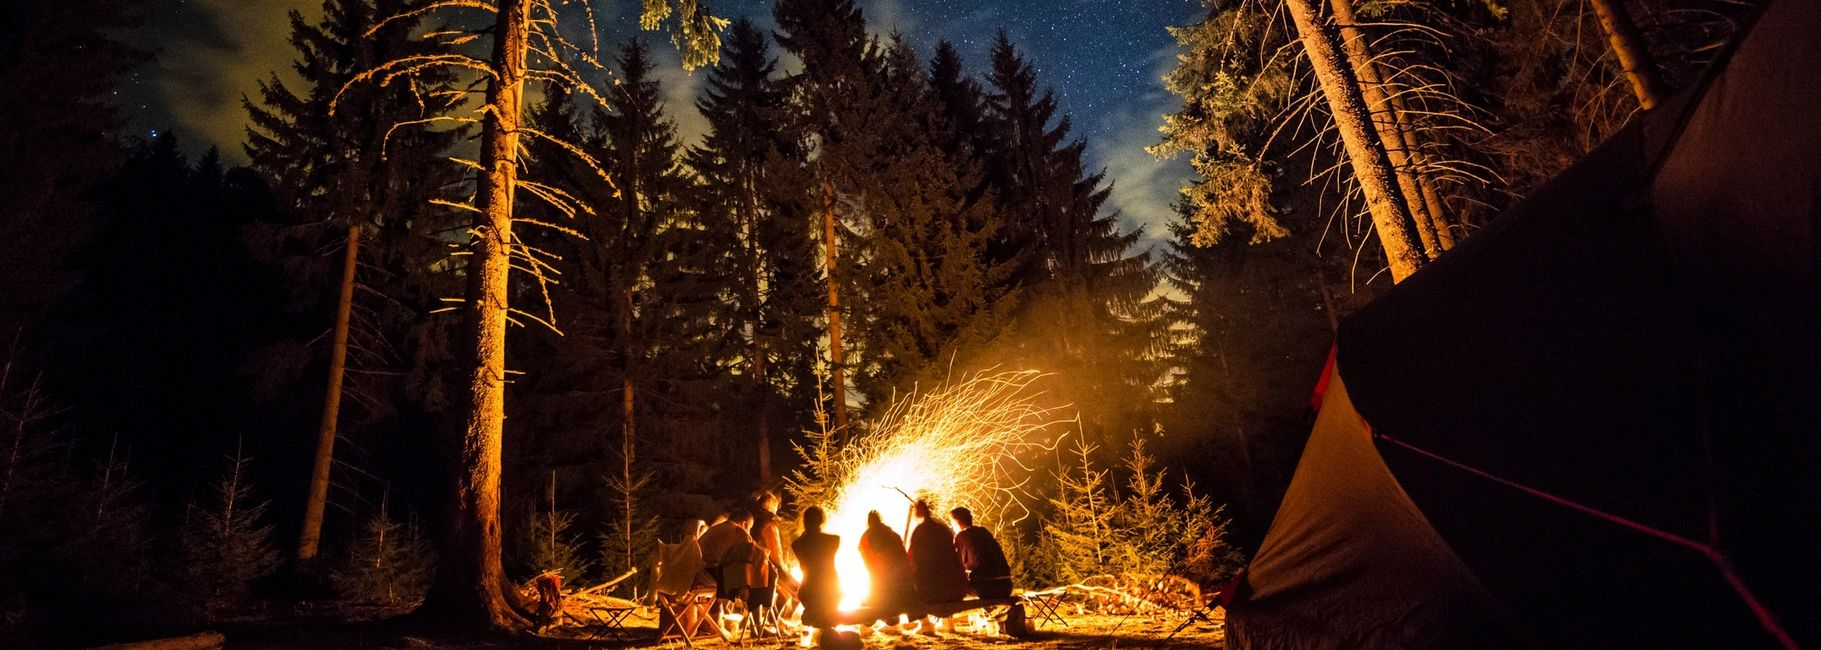 A group of people sitting around a campfire in the woods.